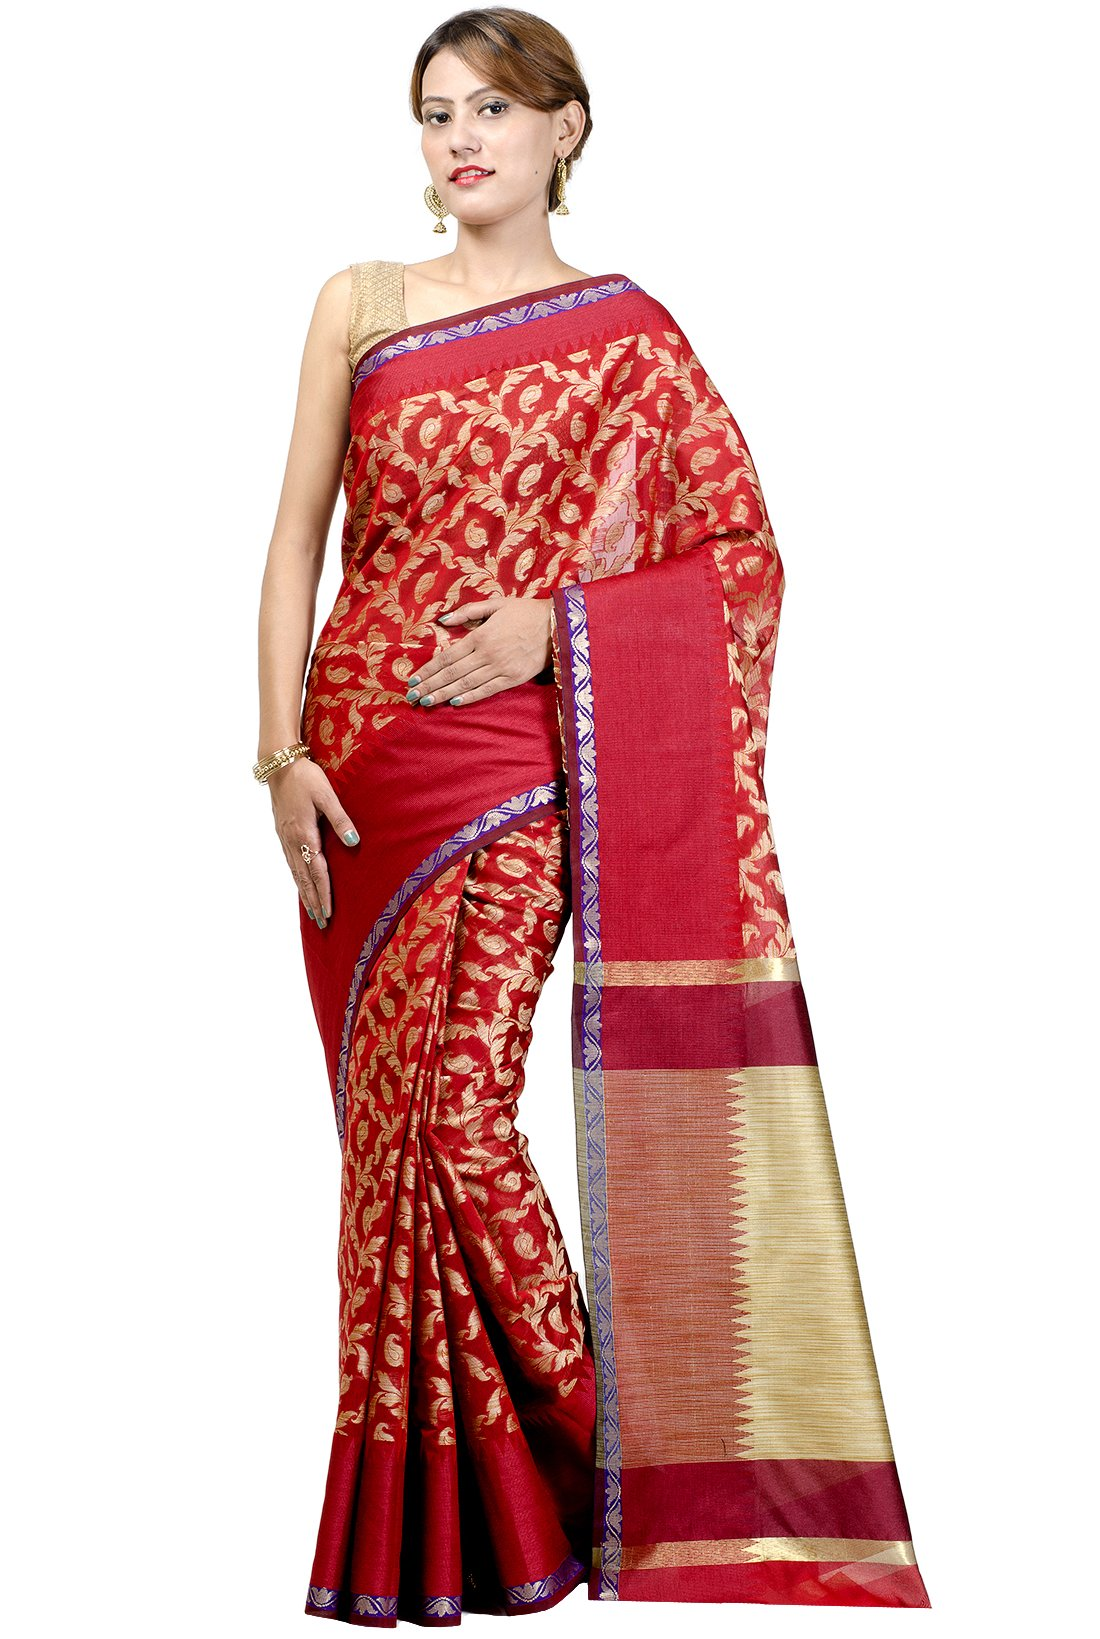 Chandrakala Women's Red Banarasi Cotton Silk Saree